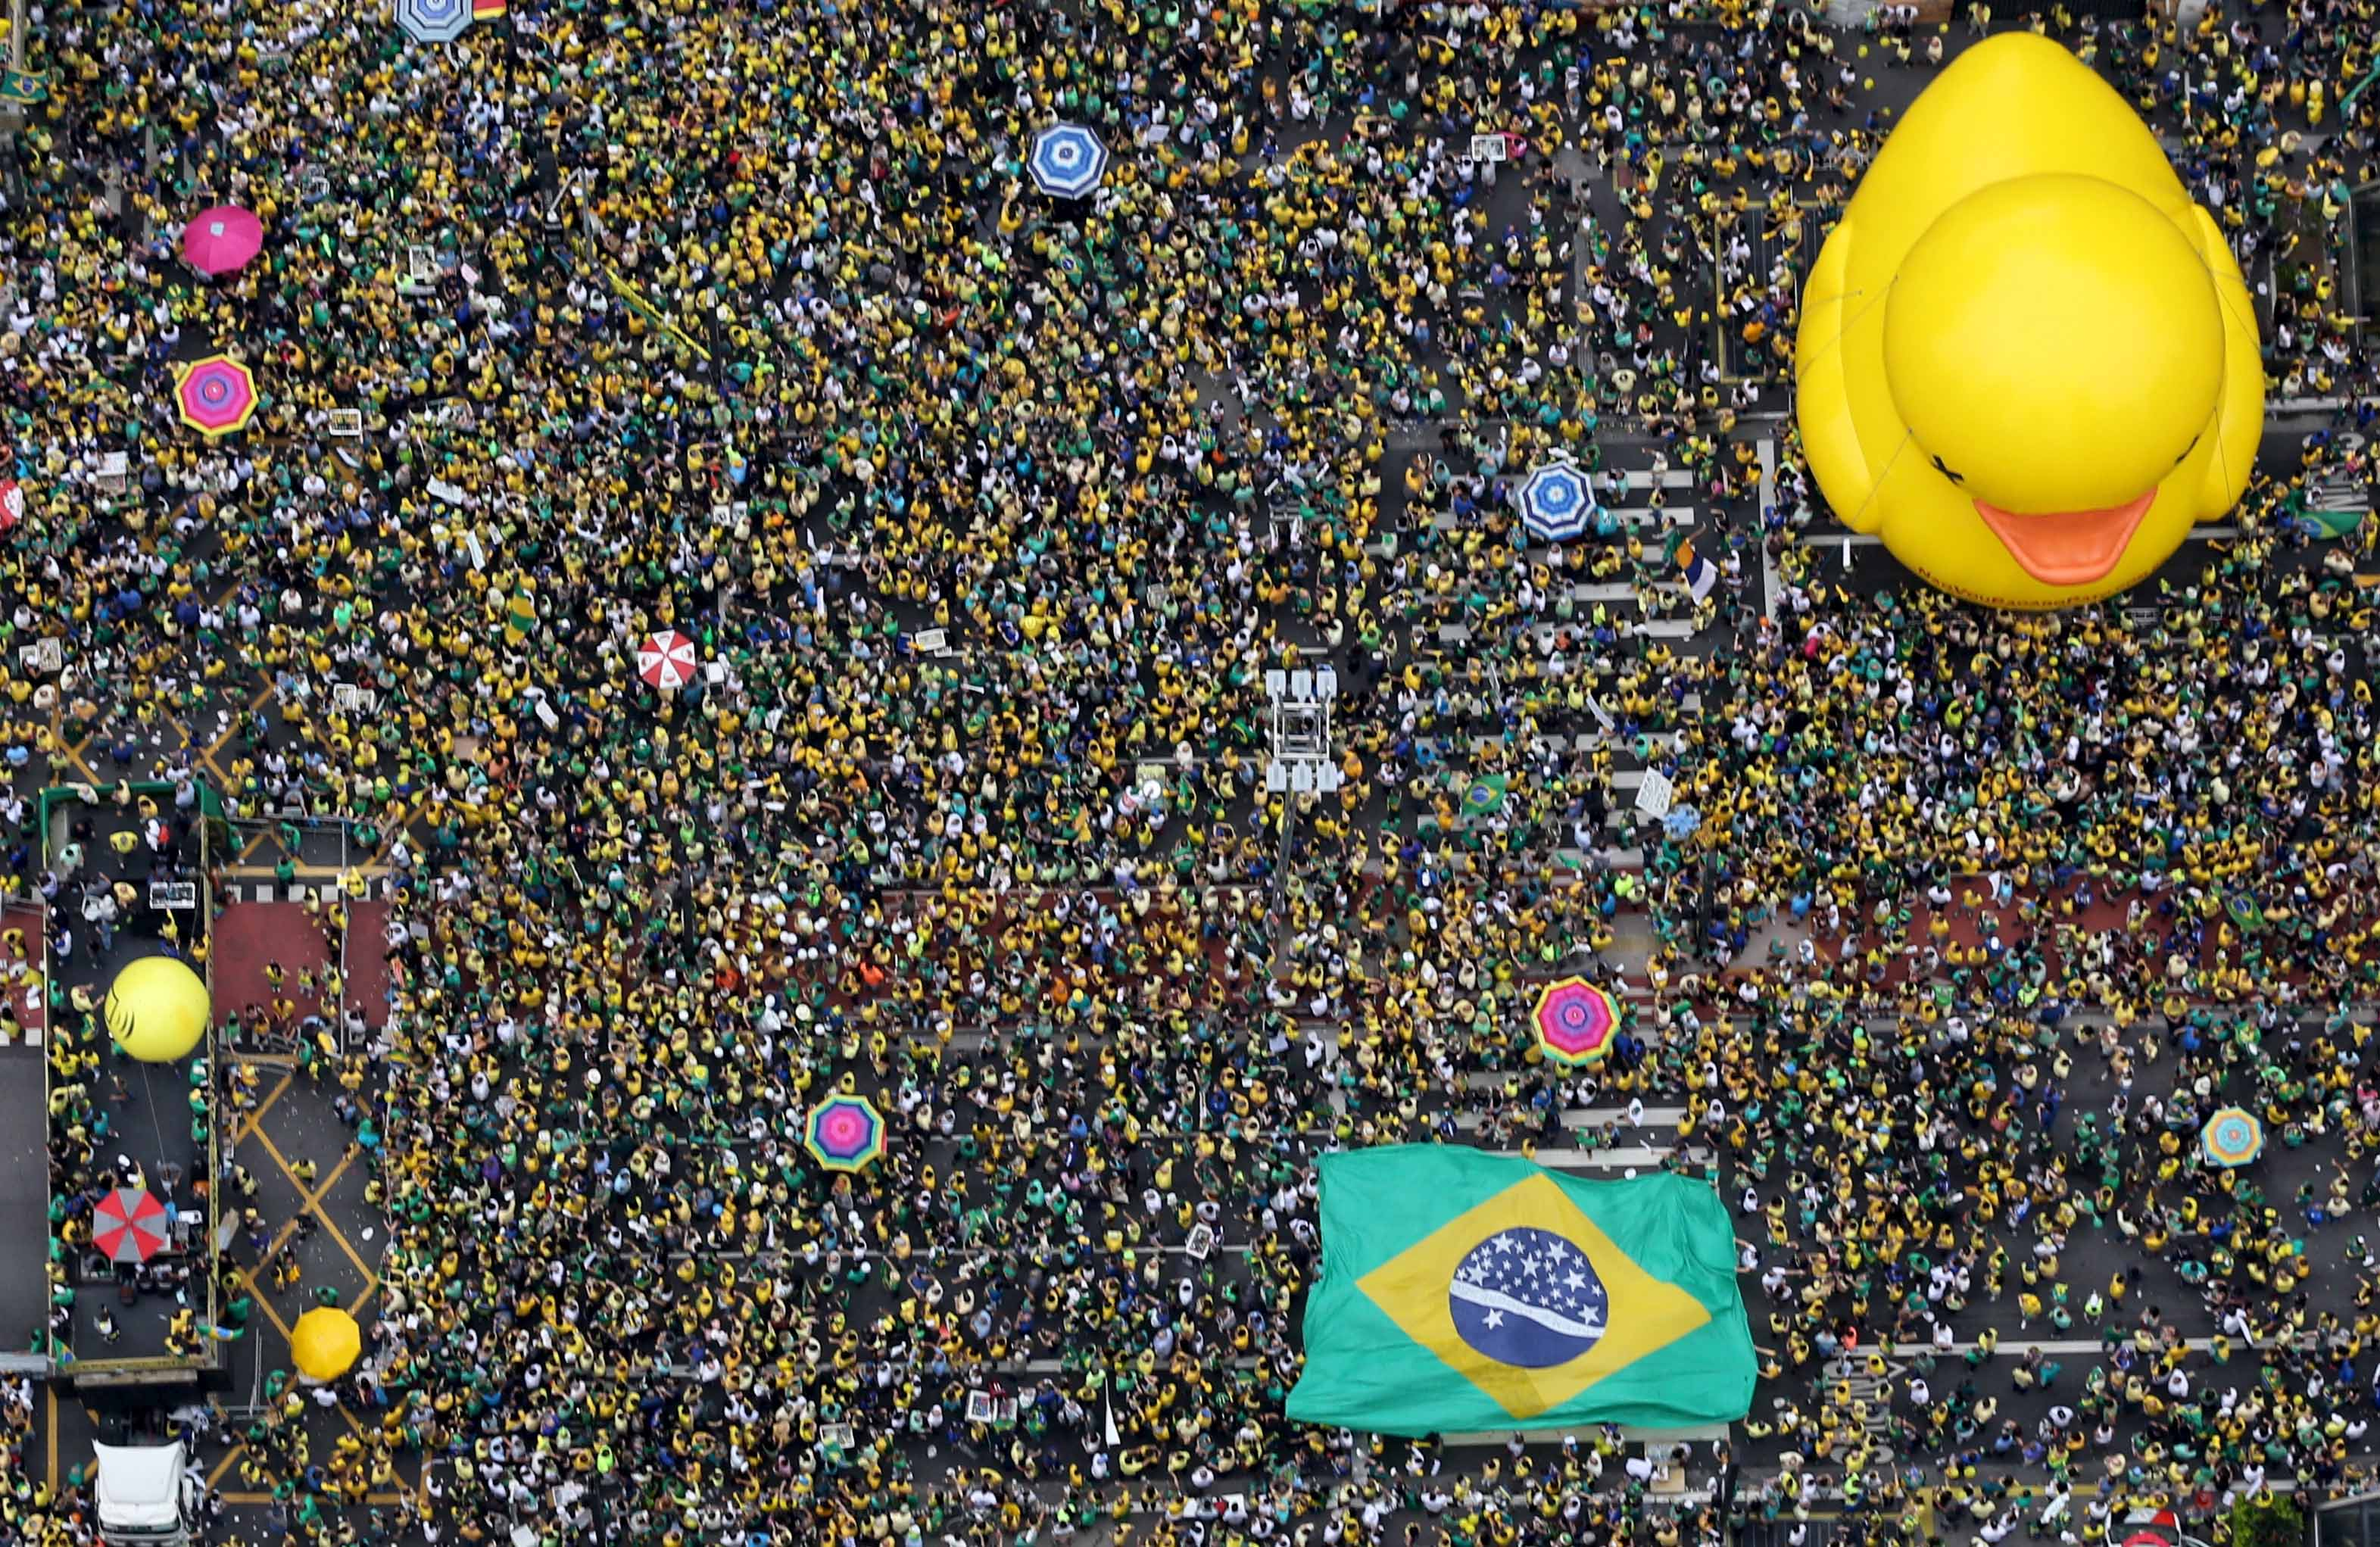 Demonstrators attend a protest against Brazil's President Dilma Rousseff, part of nationwide protests calling for her impeachment, in Sao Paulo, Brazil, March 13, 2016.    REUTERS/Paulo Whitaker      TPX IMAGES OF THE DAY      - RTX28ZGU